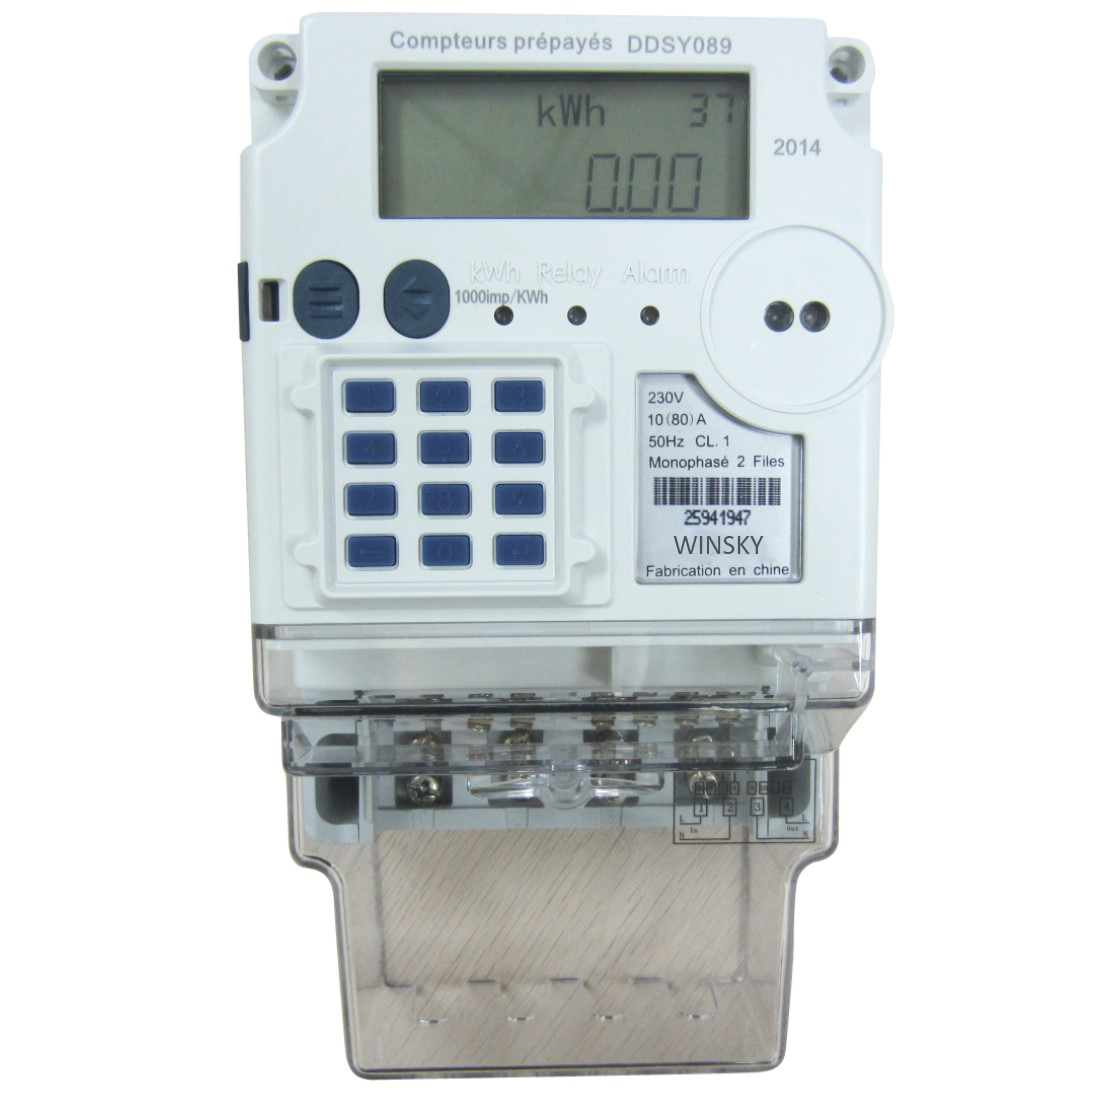 Ddsy089 Multi Functional Single Phase Meter Energy Winsky How To Wire Kwh Electrical Technology Sdsdssdsd